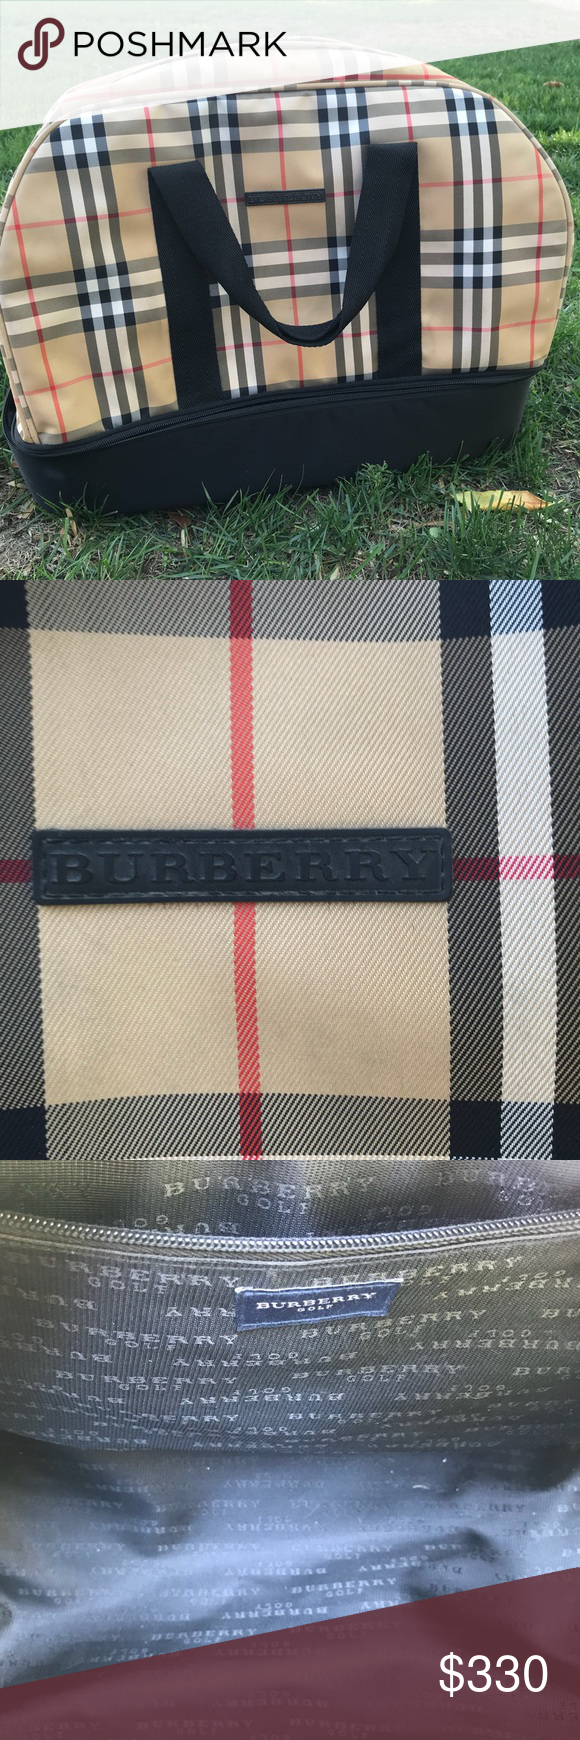 Burberry Gold Bag Great condition Burberry Golf Bag. This bag is in amazing  condition. e59b1e225e88b